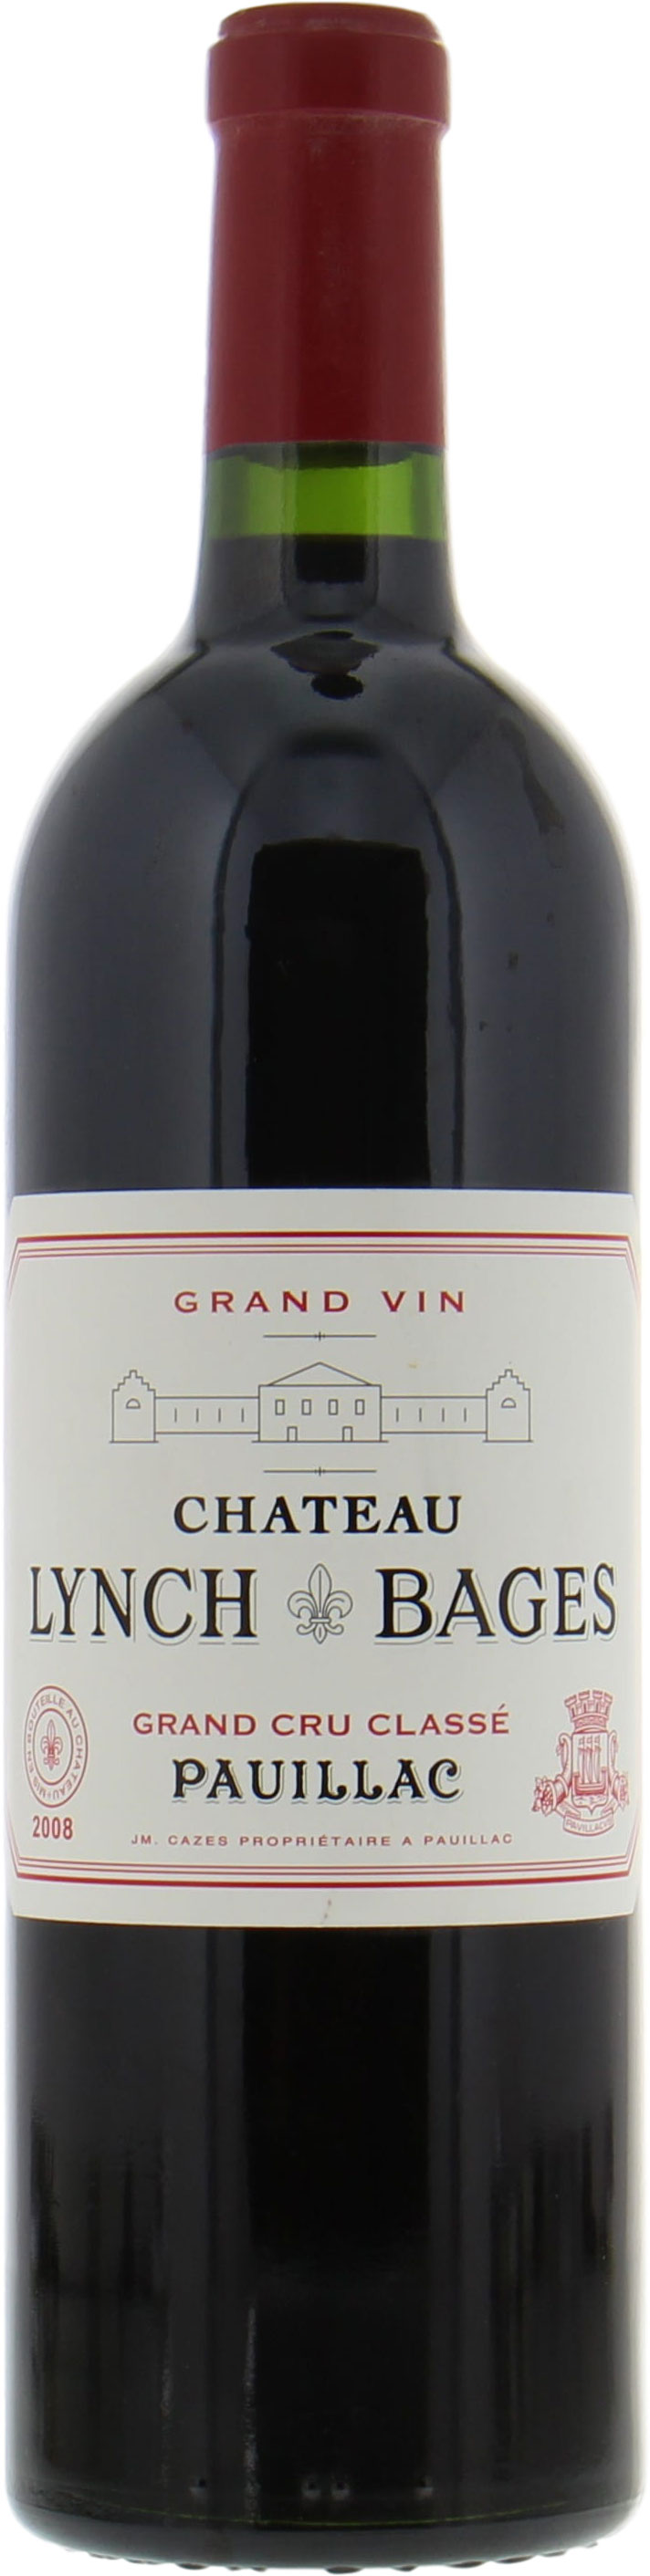 Chateau Lynch Bages - Chateau Lynch Bages 2008